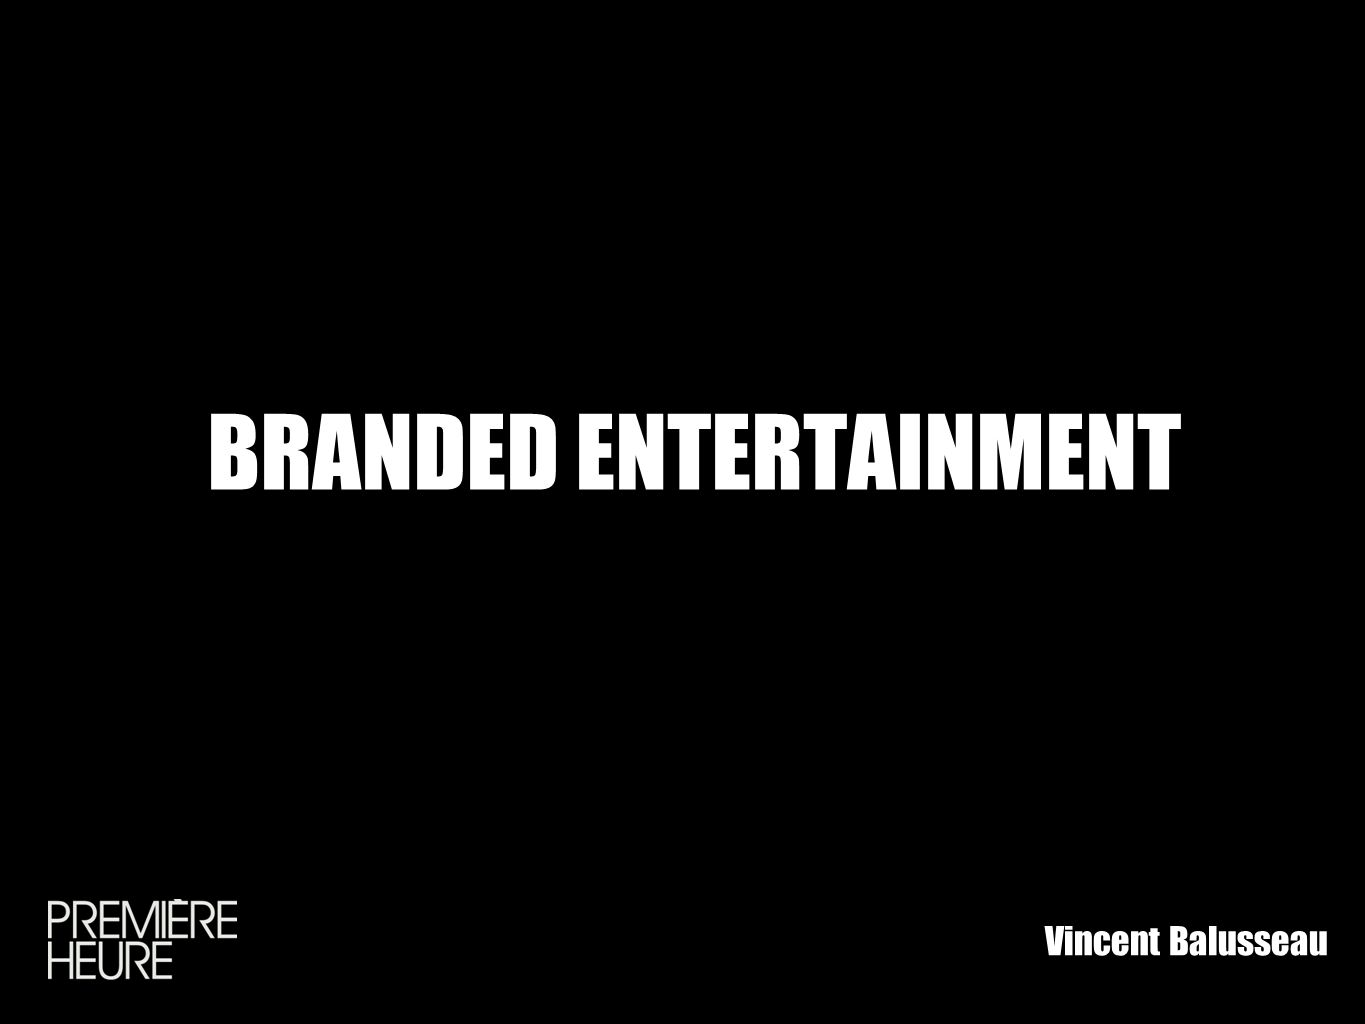 BRANDED ENTERTAINMENT Vincent Balusseau